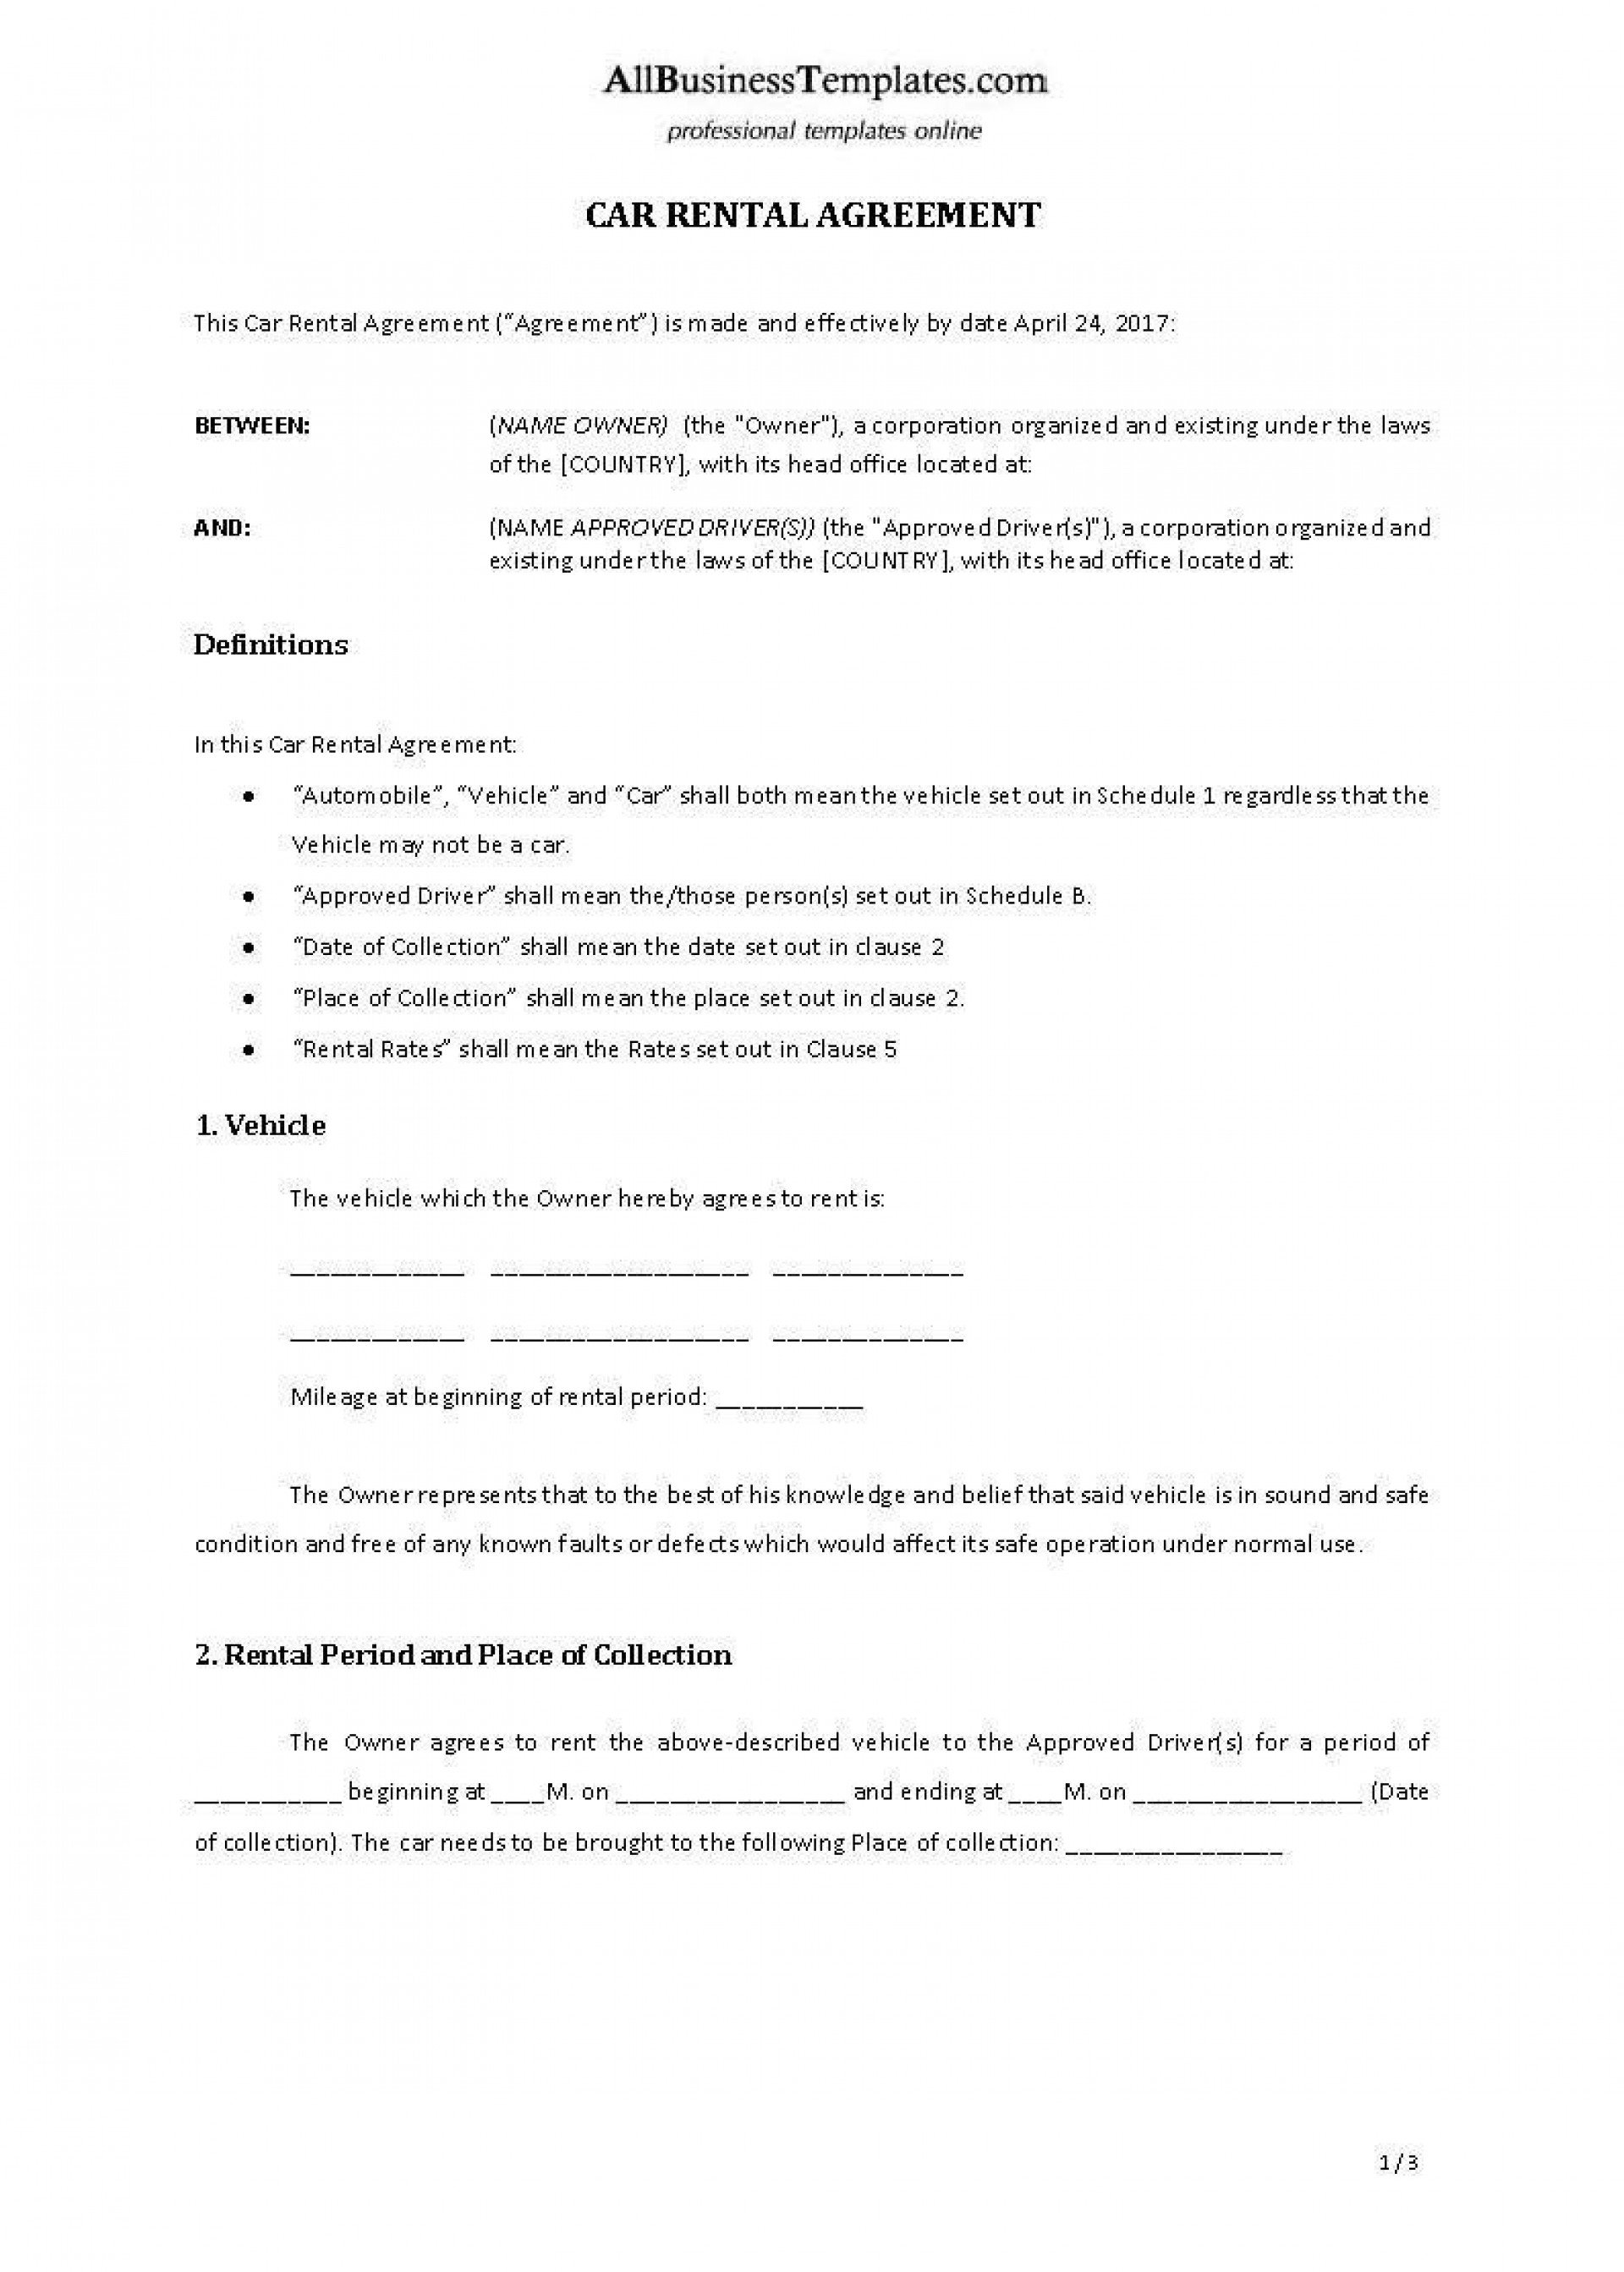 006 Breathtaking Car Rental Agreement Template High Def  Vehicle Rent To Own South Africa Singapore1920